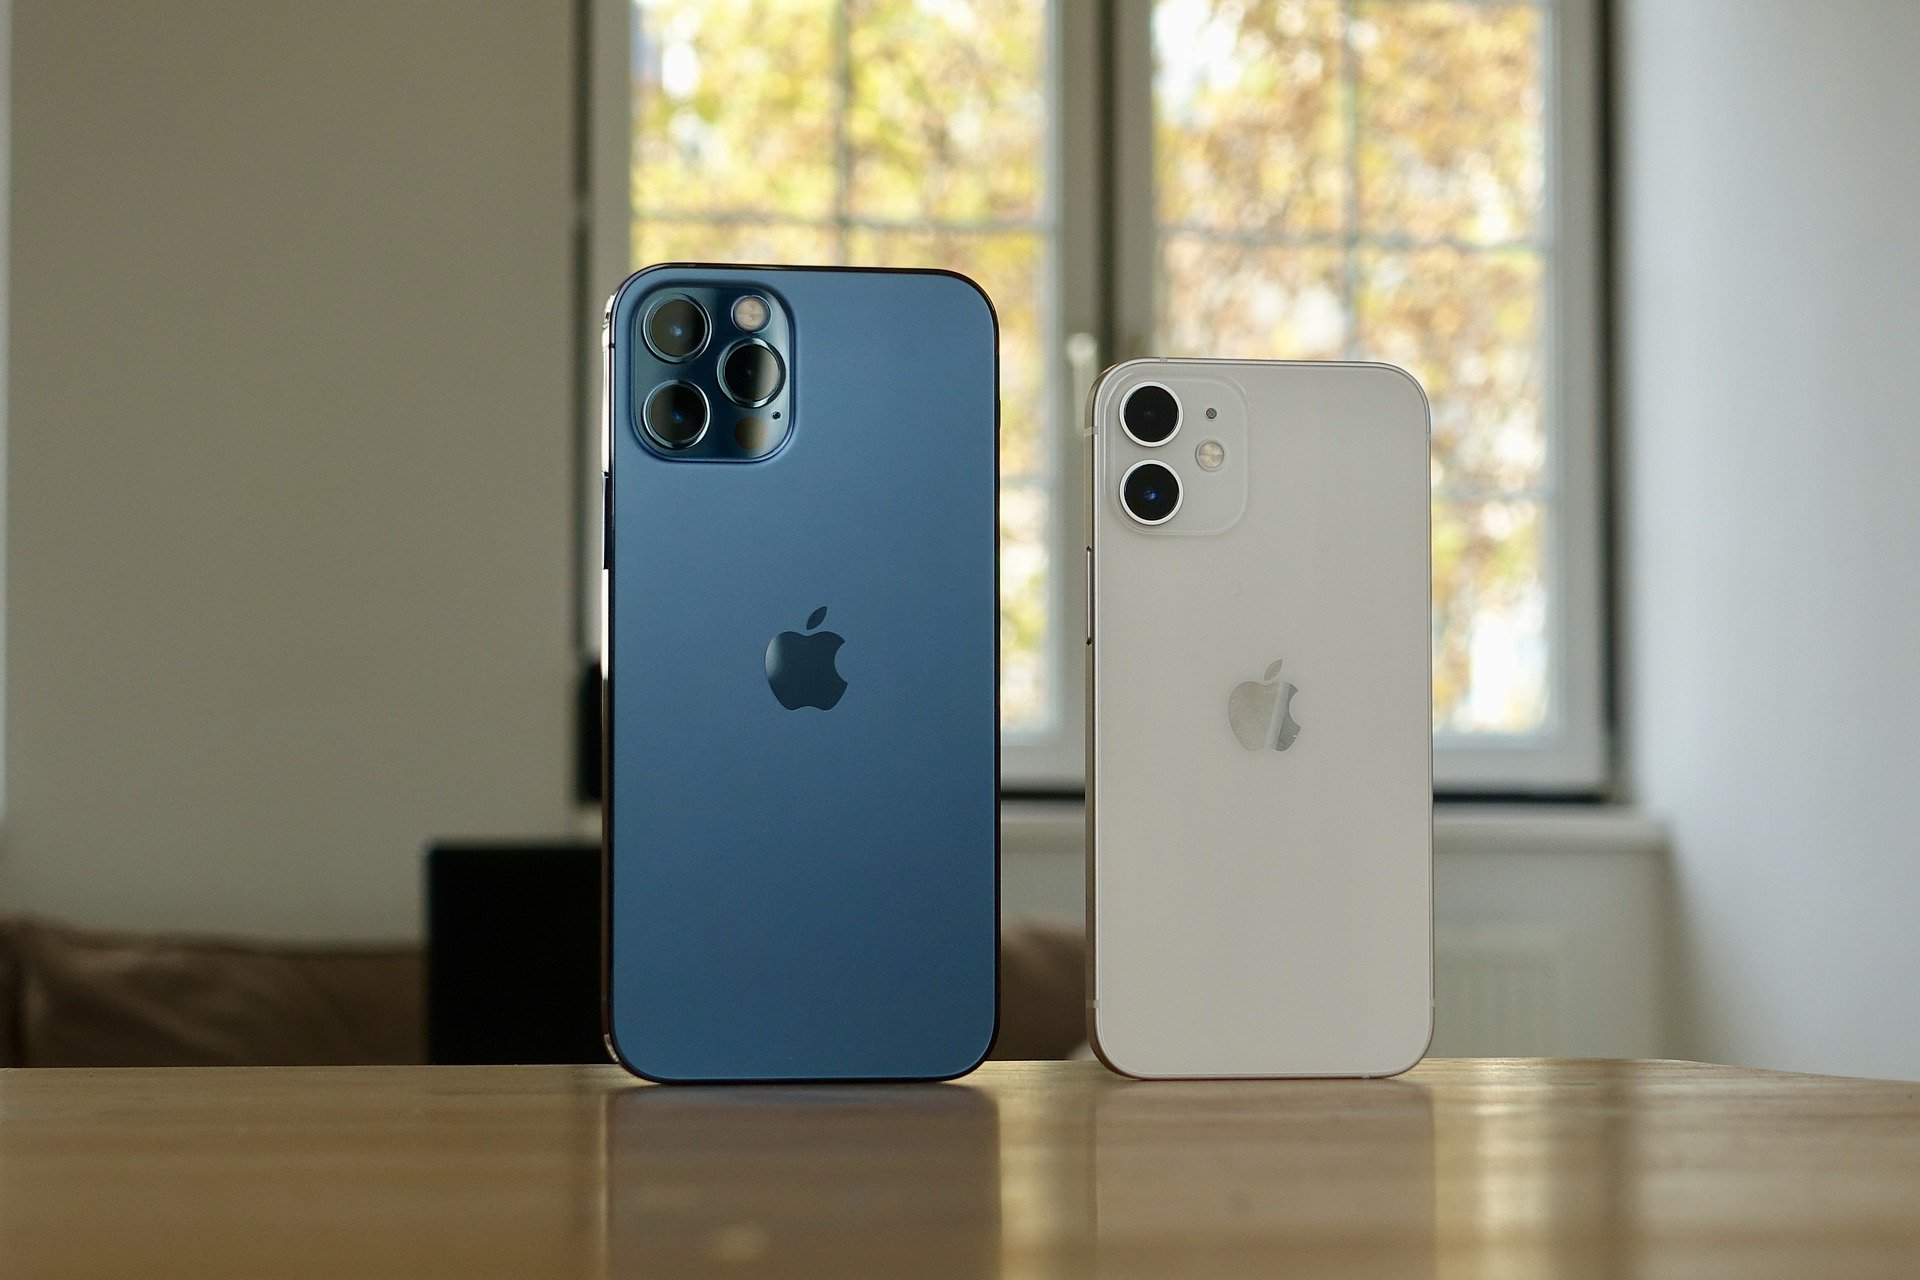 Apple is expected to include LiDAR Scanner to the entire range of iPhone 13